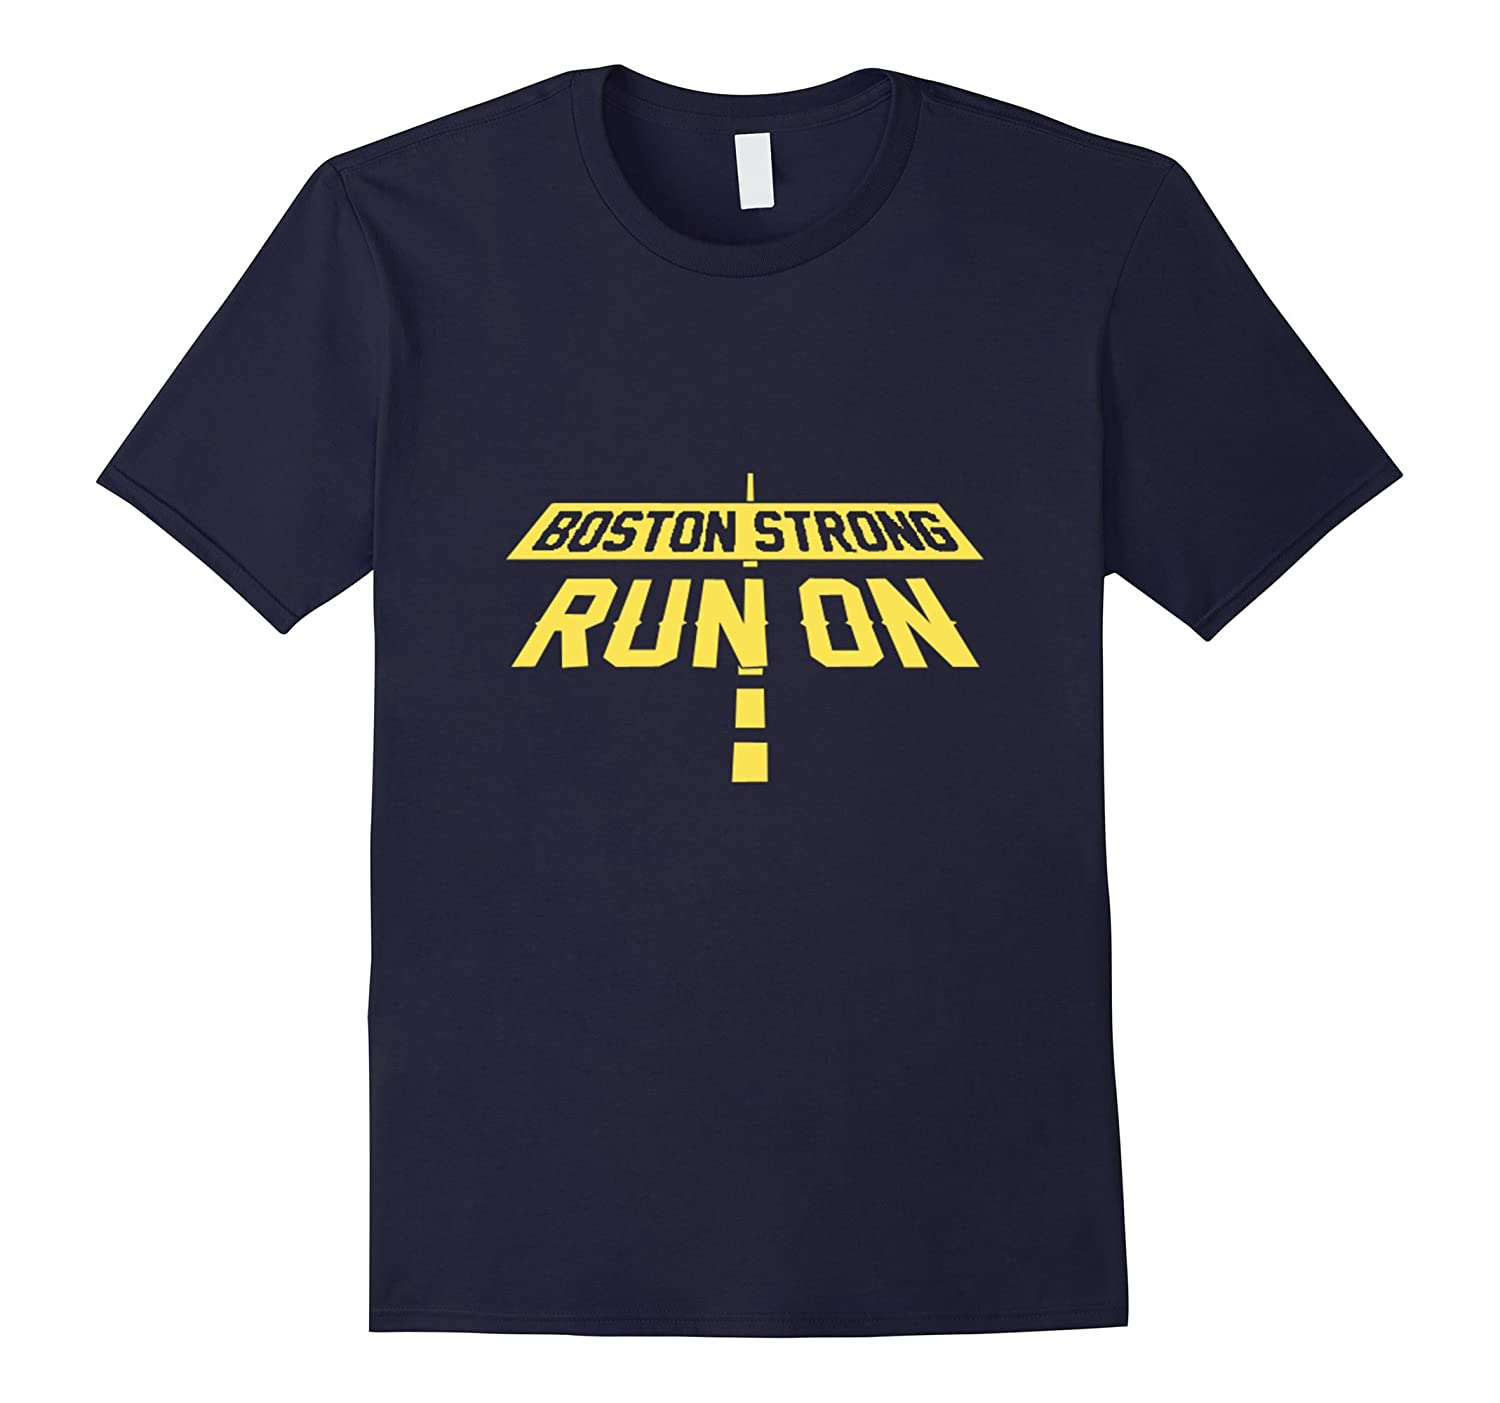 Boston Strong Marathon Run On Shirt Runners Running Shirt-TD